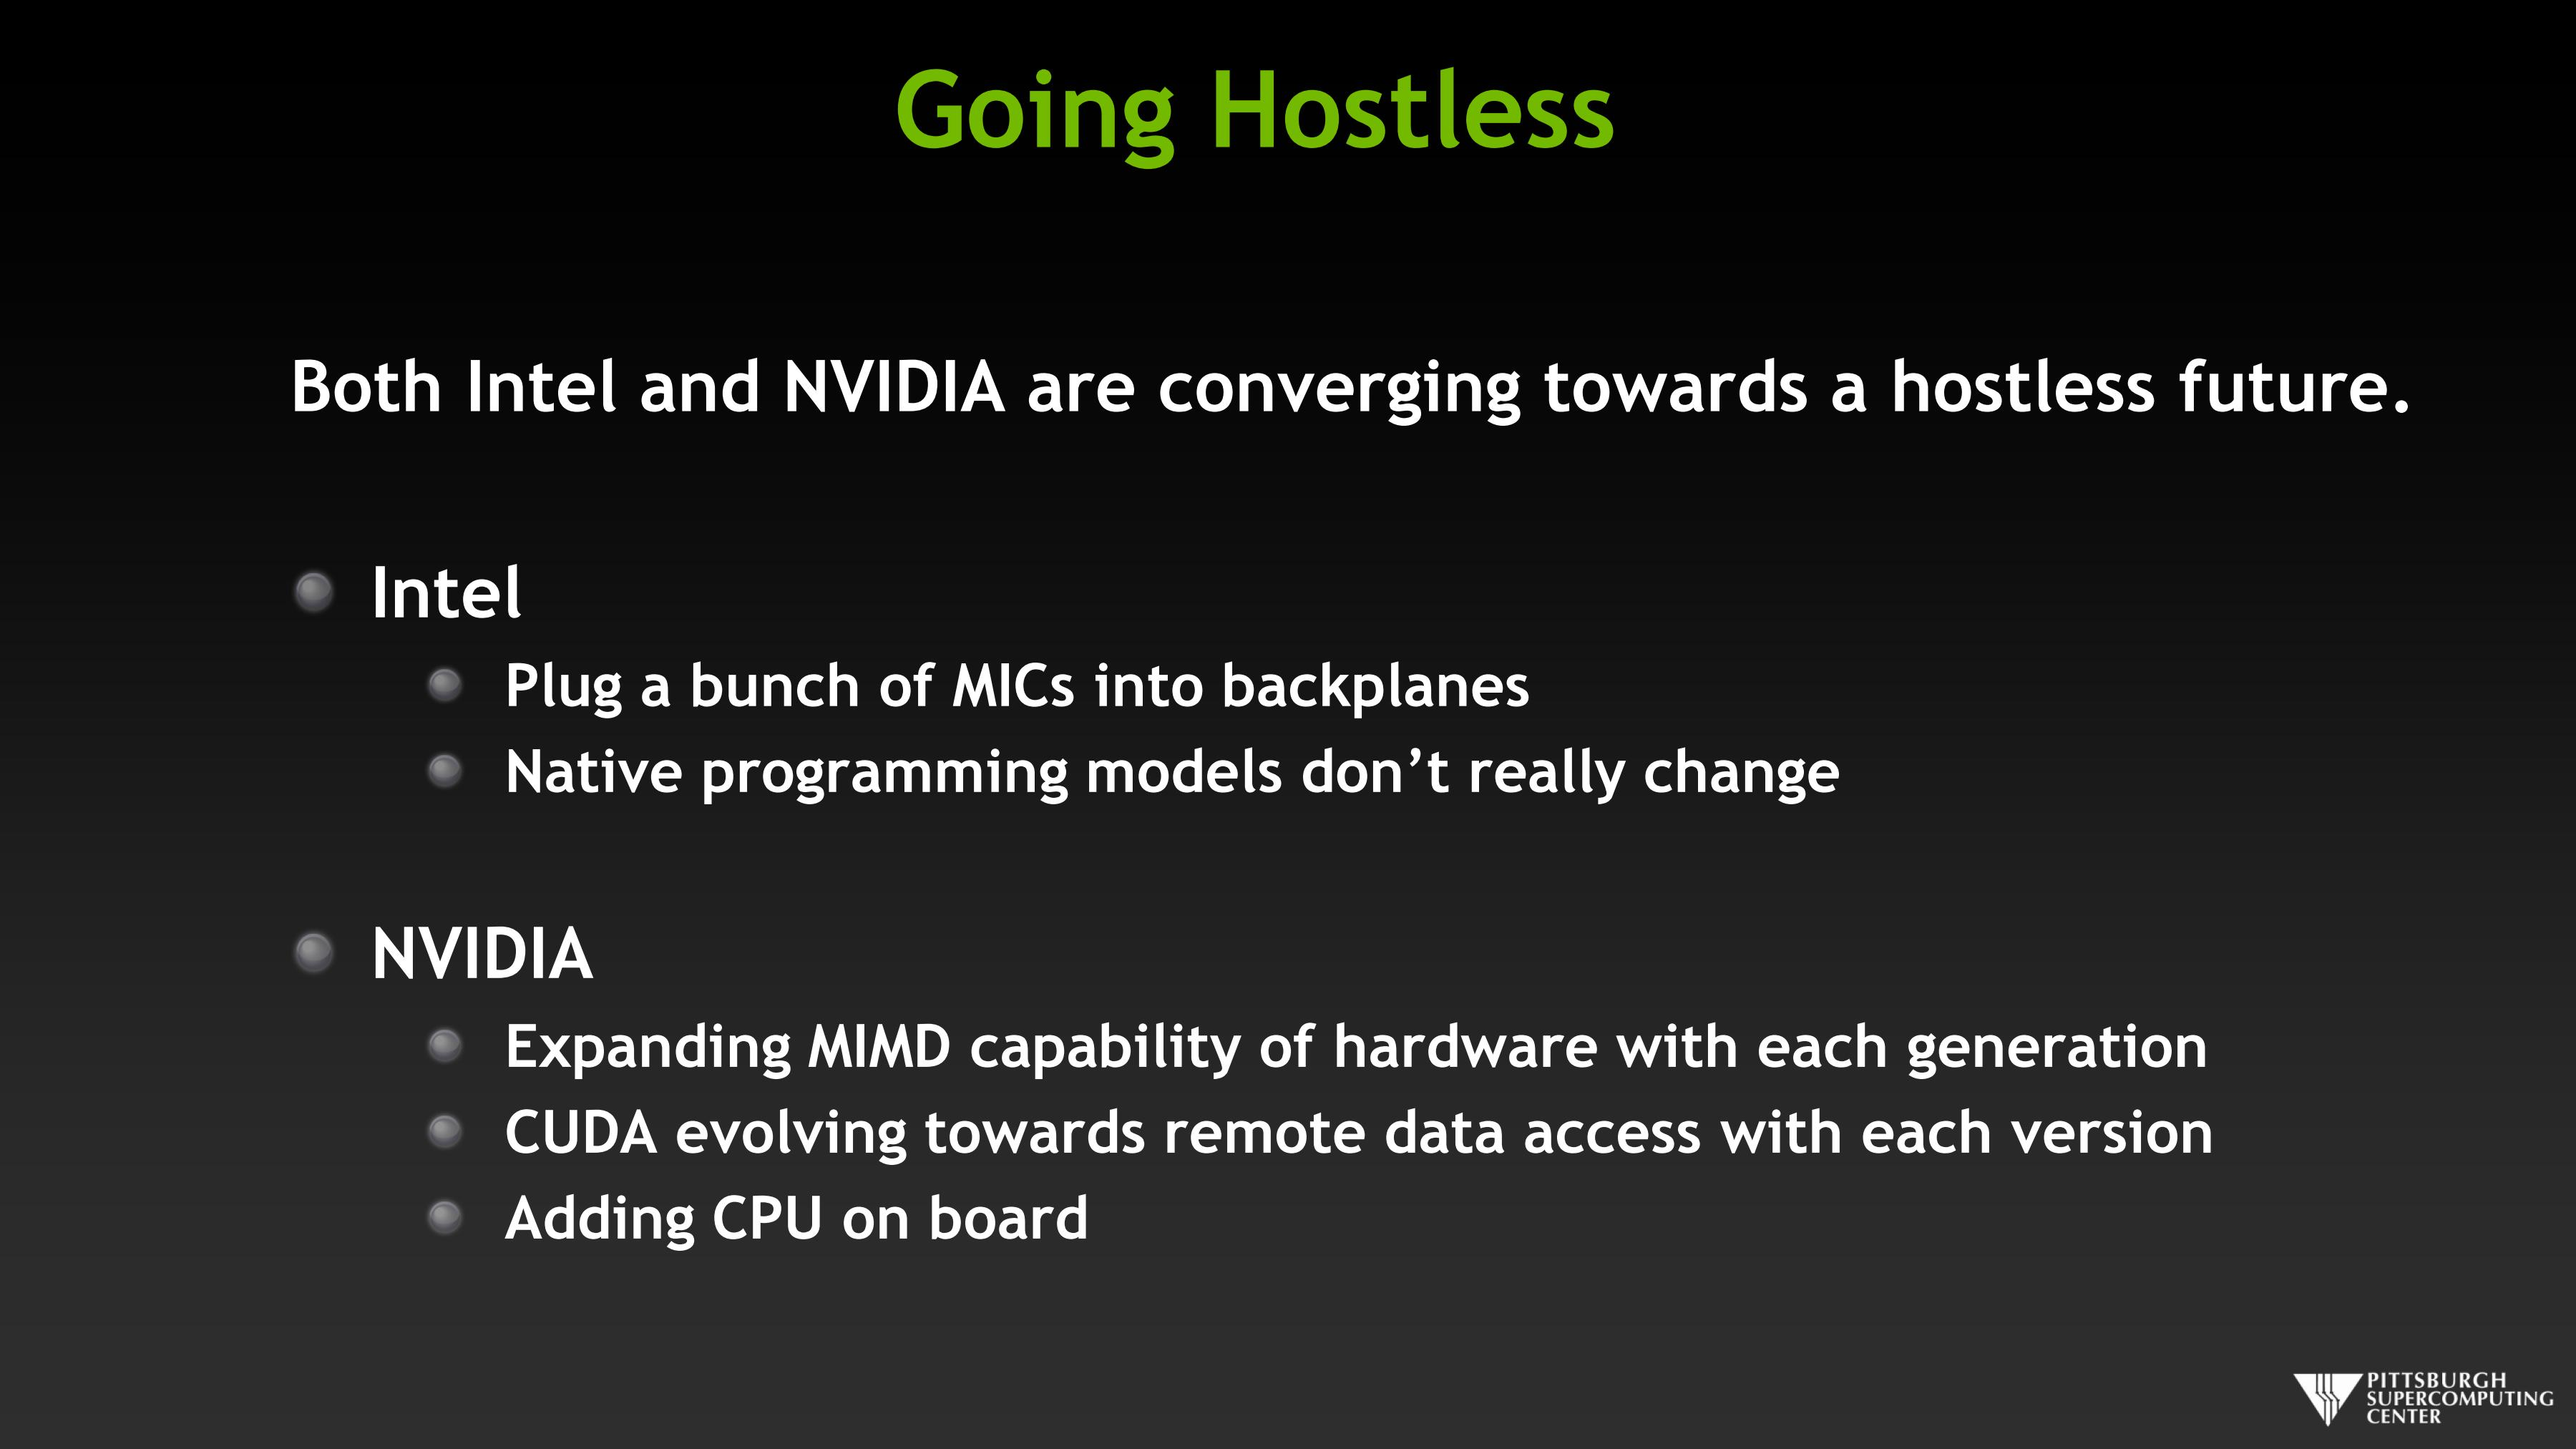 Going Hostless